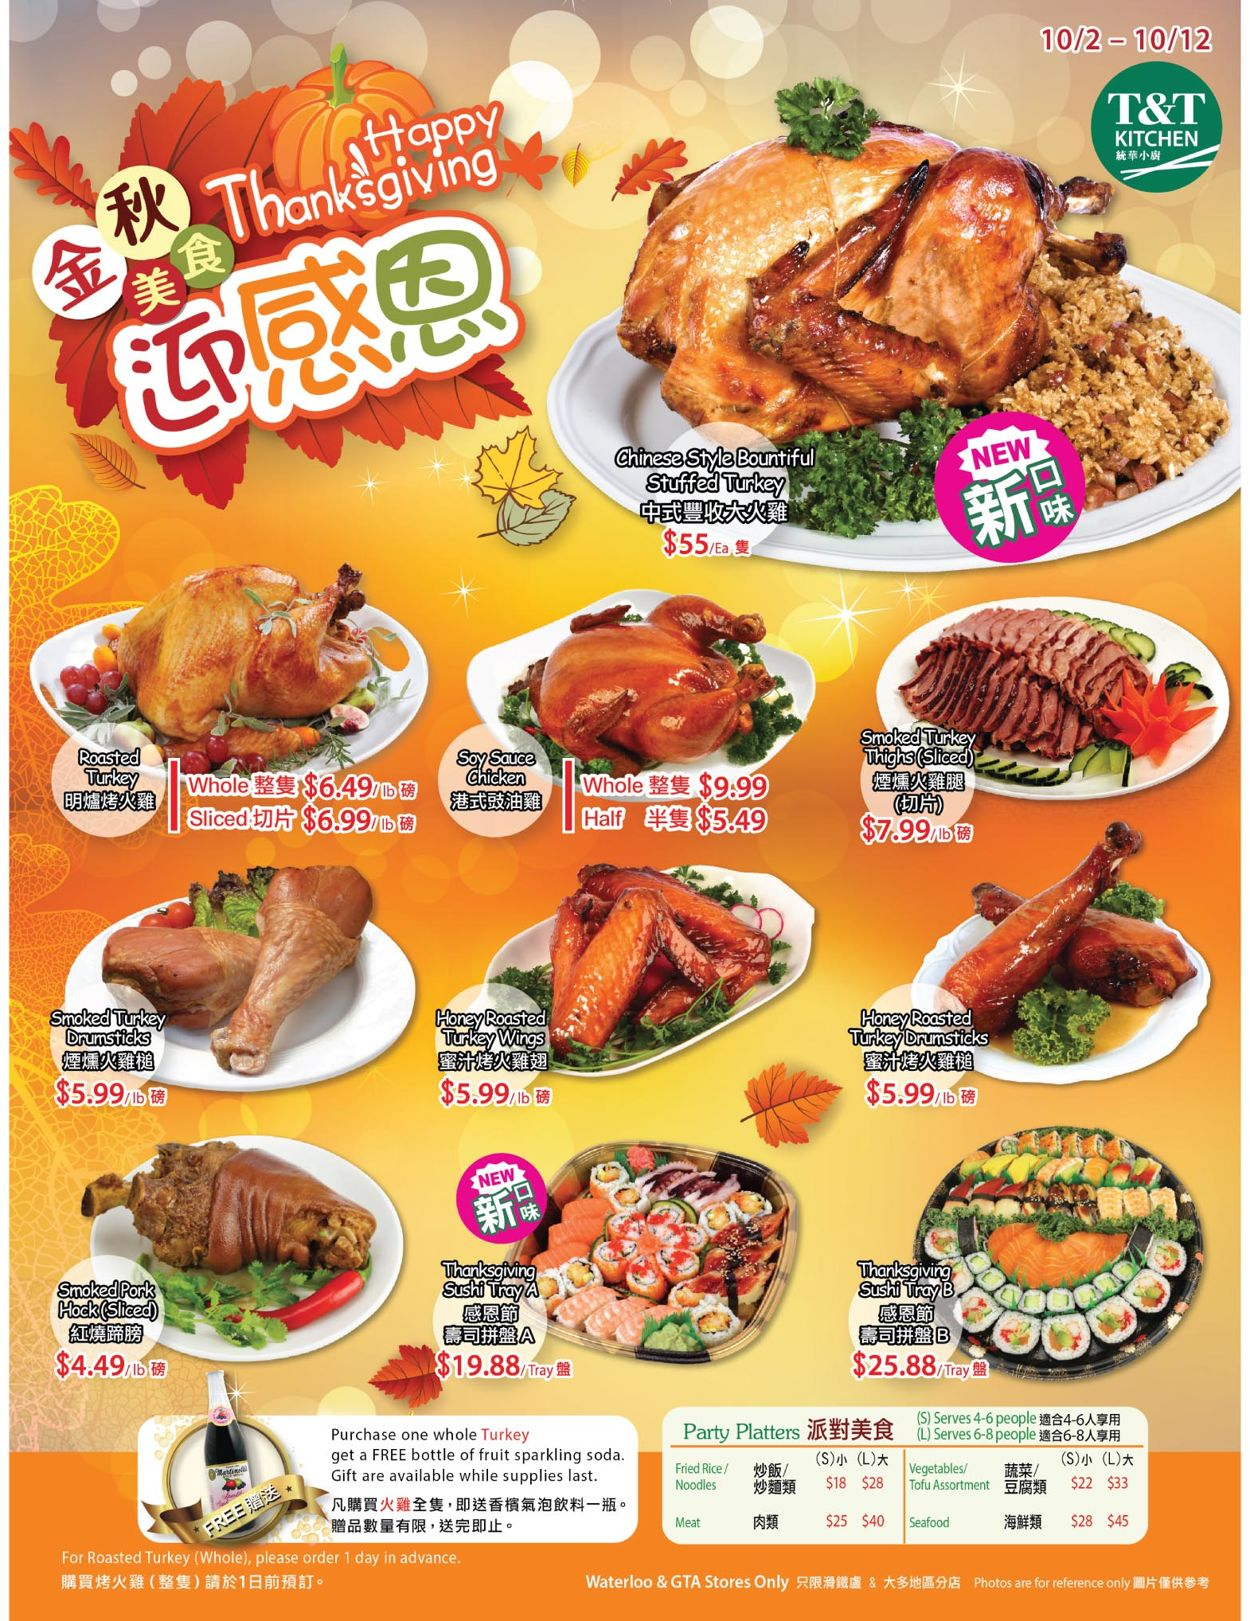 T&T Supermarket - Greater Toronto Area Flyer - 10/02-10/08/2020 (Page 4)